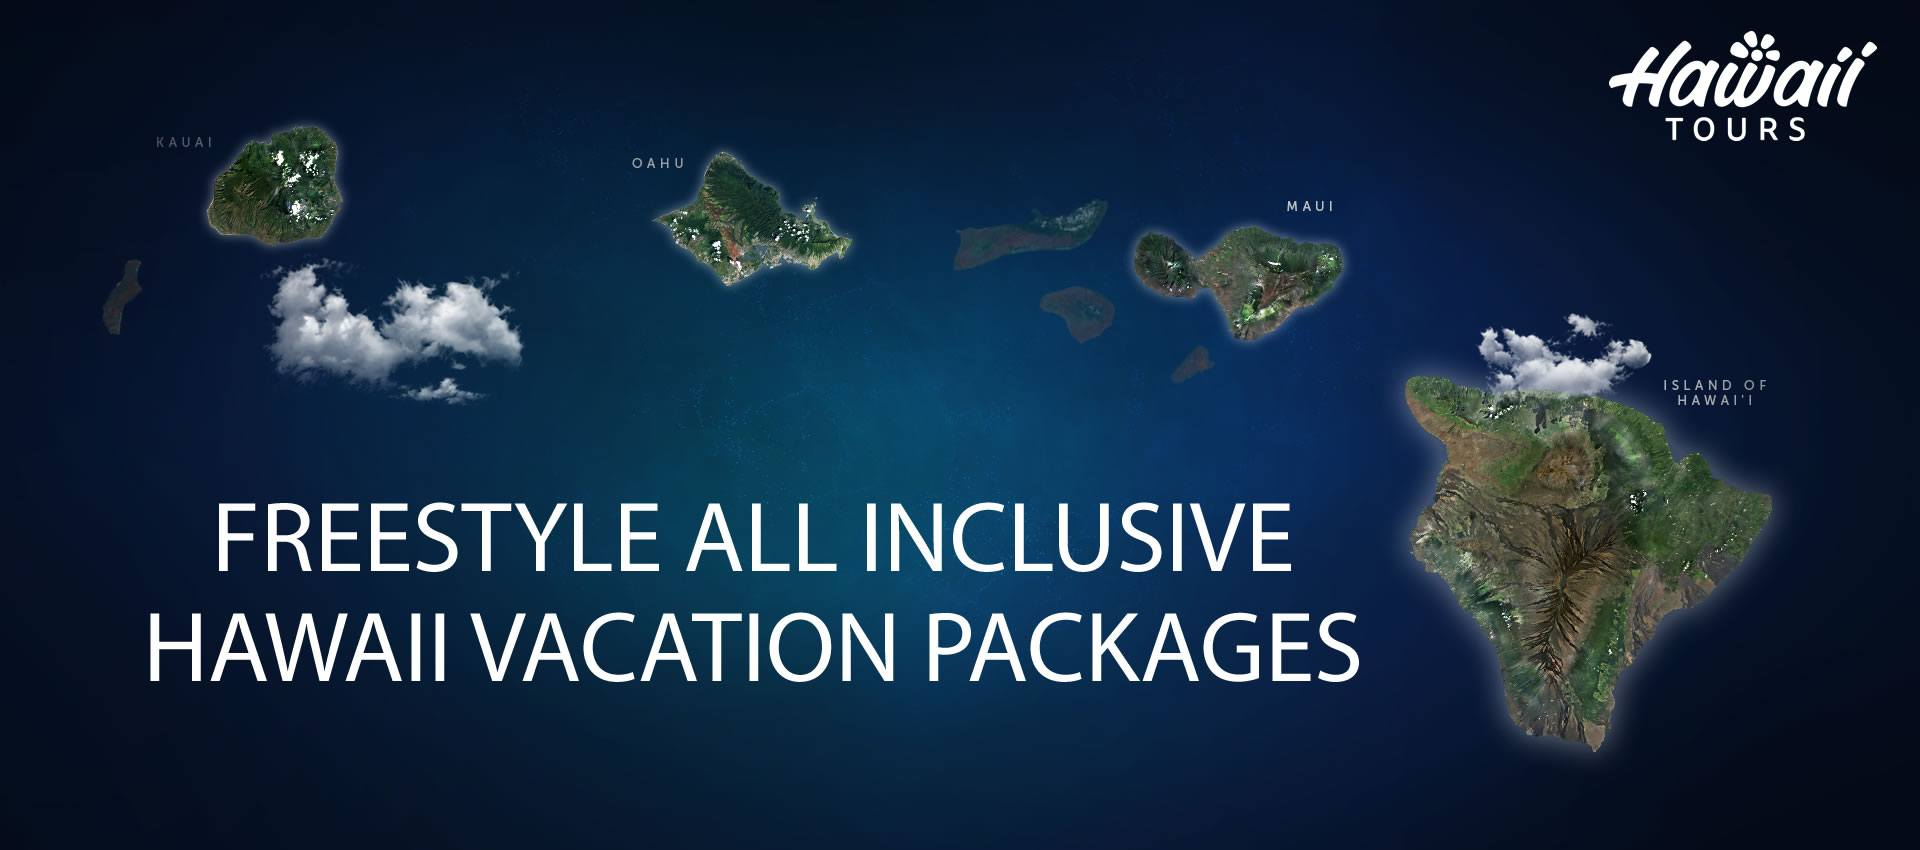 All inclusive hawaii vacations